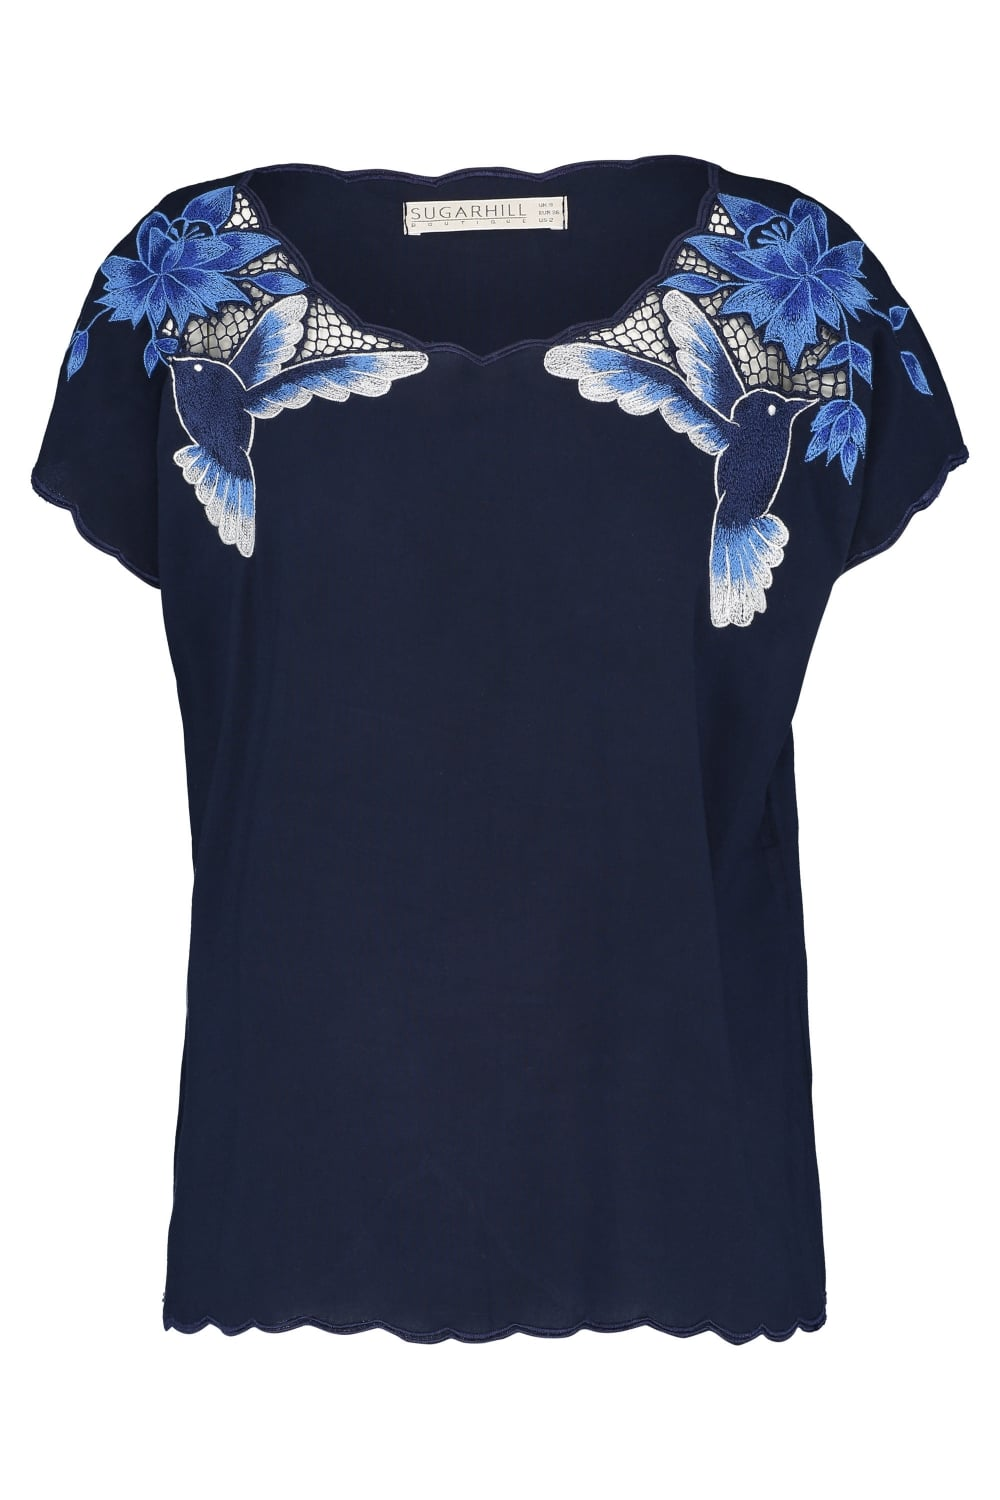 hummingbird cutwork tee top1